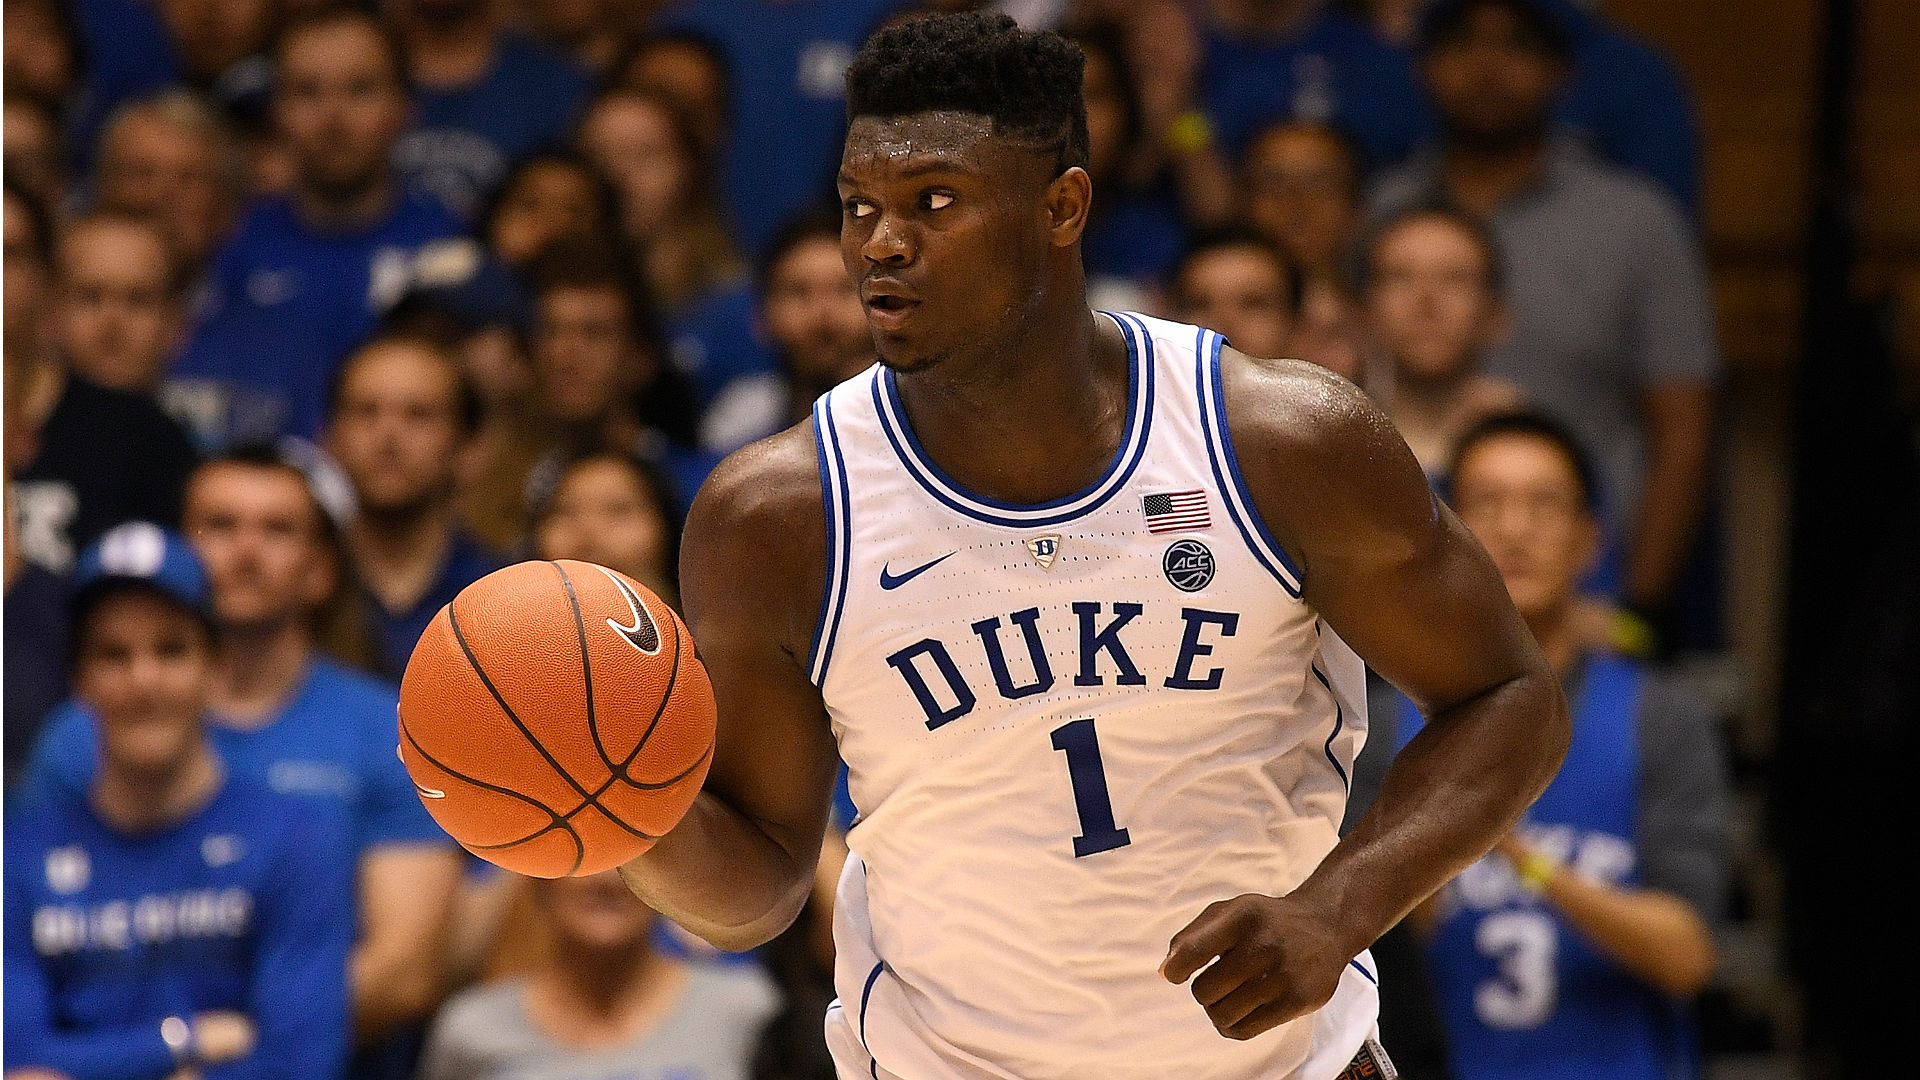 'Focus on the game' – Bryant to Duke star Zion